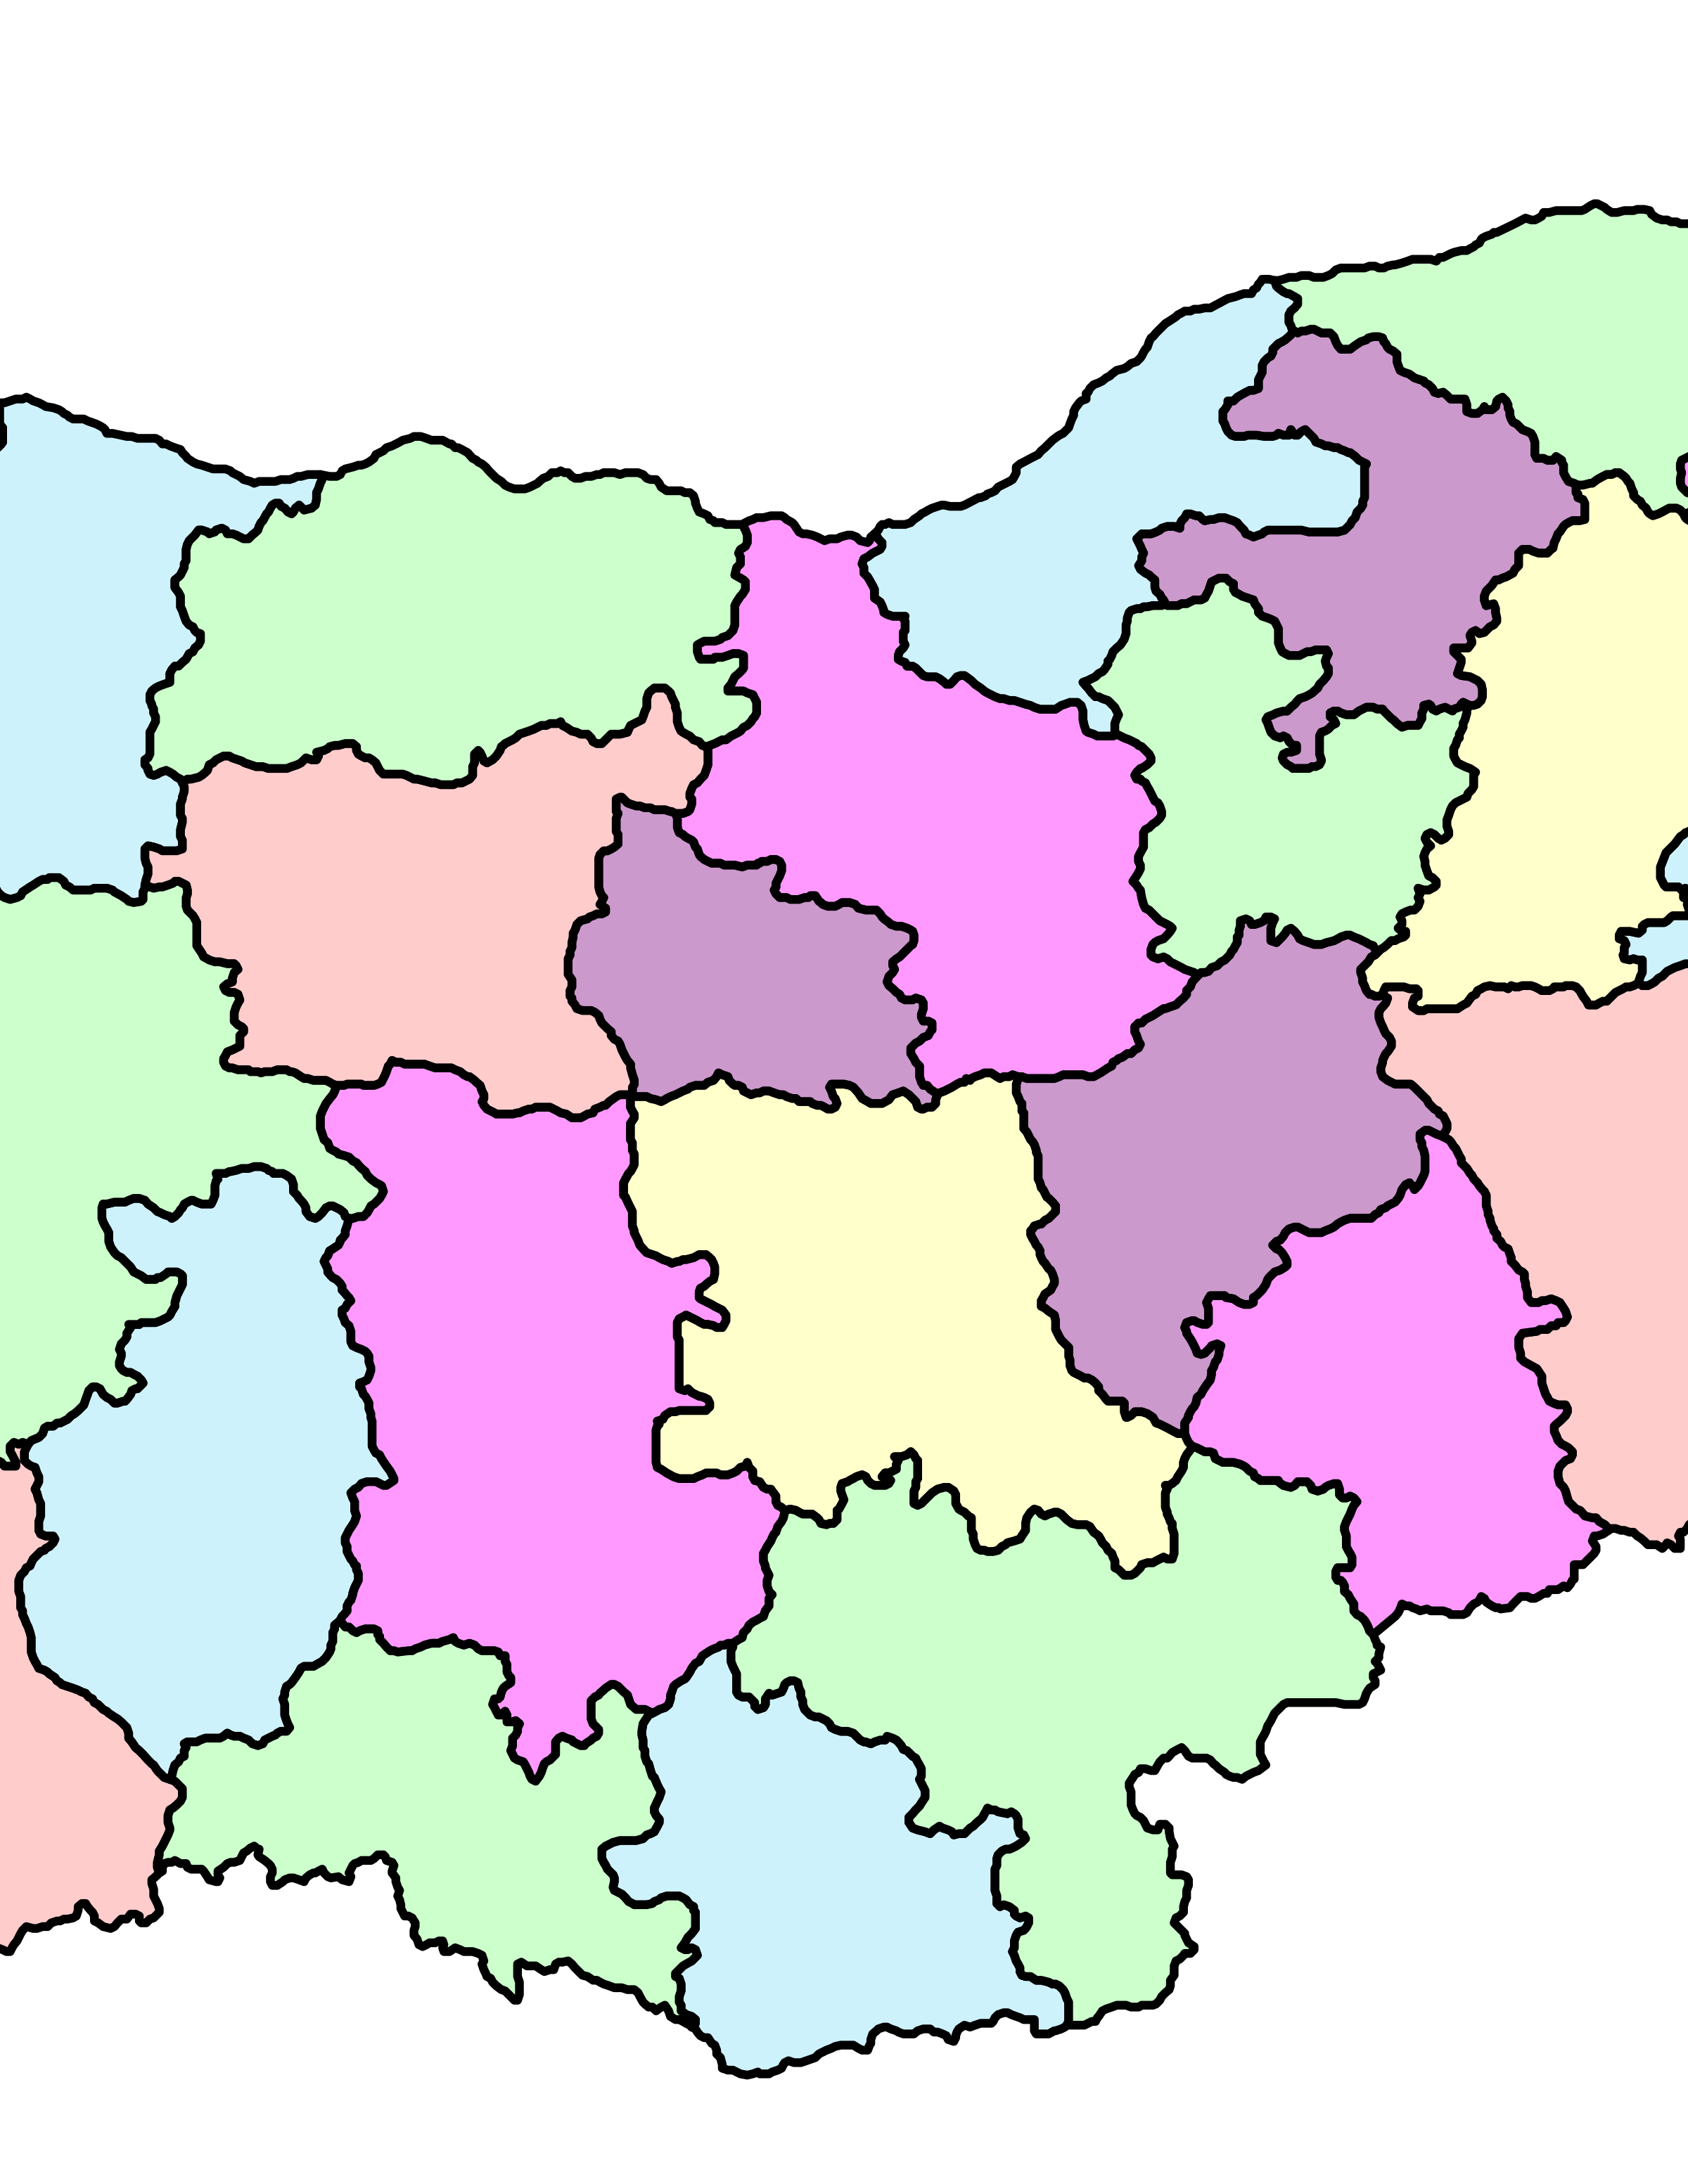 administrative map of Bulgaria by ivak